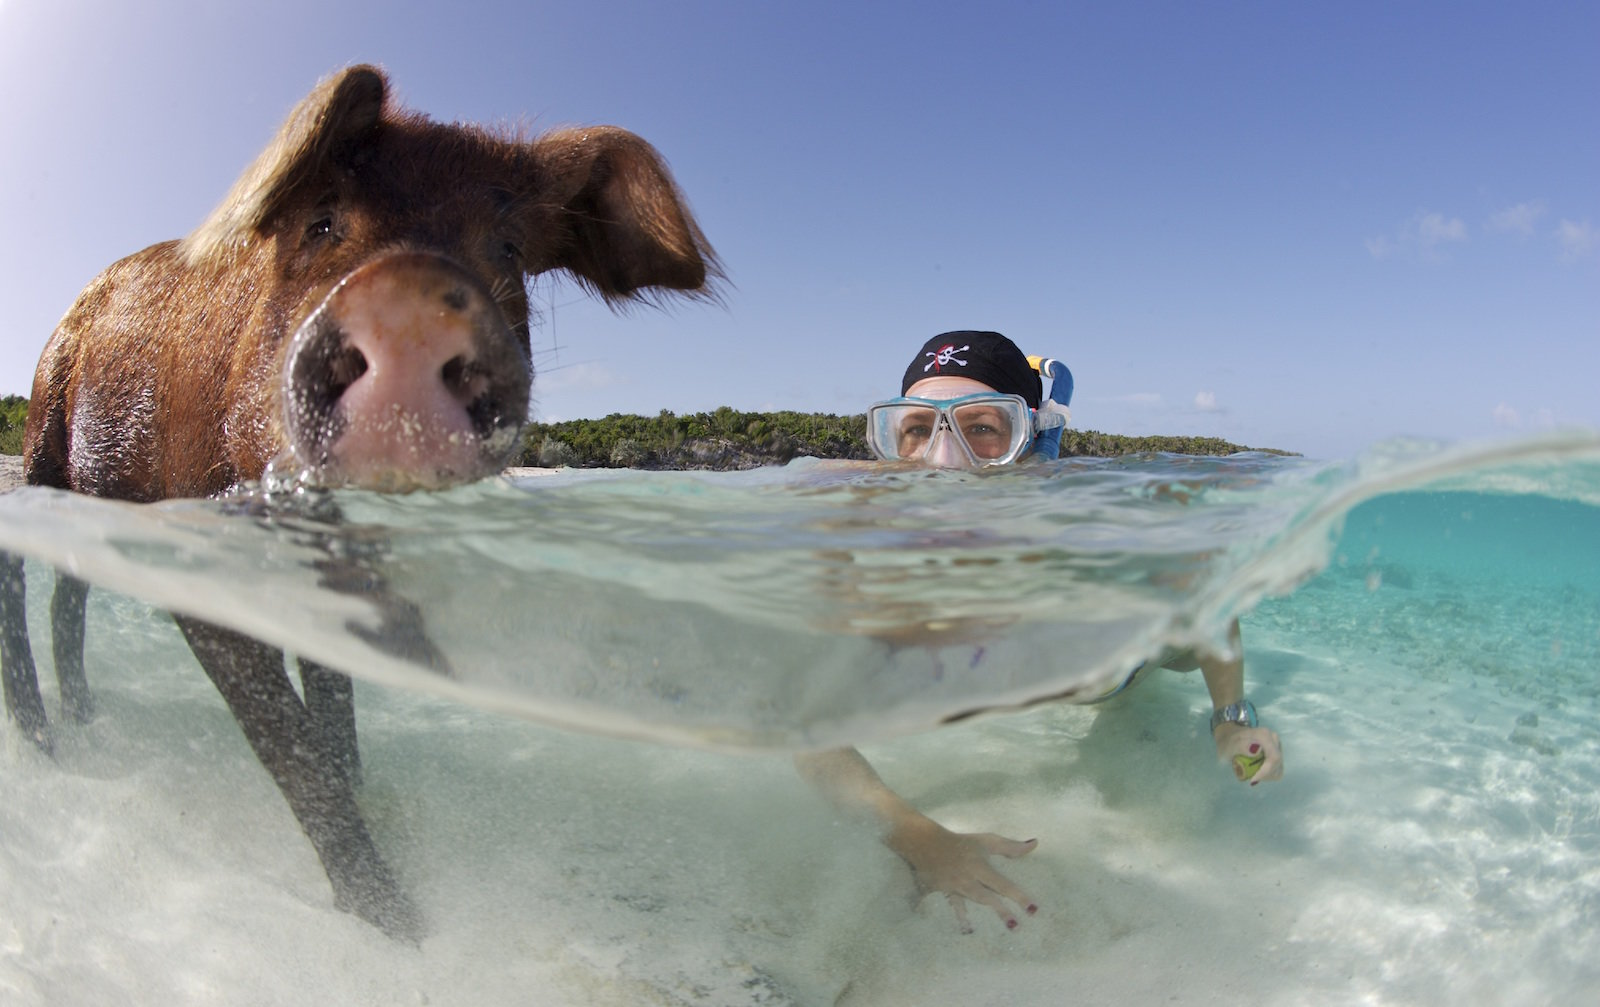 "BAHAMAS - DATE UNSPECIFIED: ***EXCLUSIVE*** Nadine Umbscheiden snorkels with a pig, in the Bahamas. Nadine, a German underwater photographer was dubbed the ""pig whisperer"" for her ability to swim with the pigs. Swimming in the crystal clear waters off the"